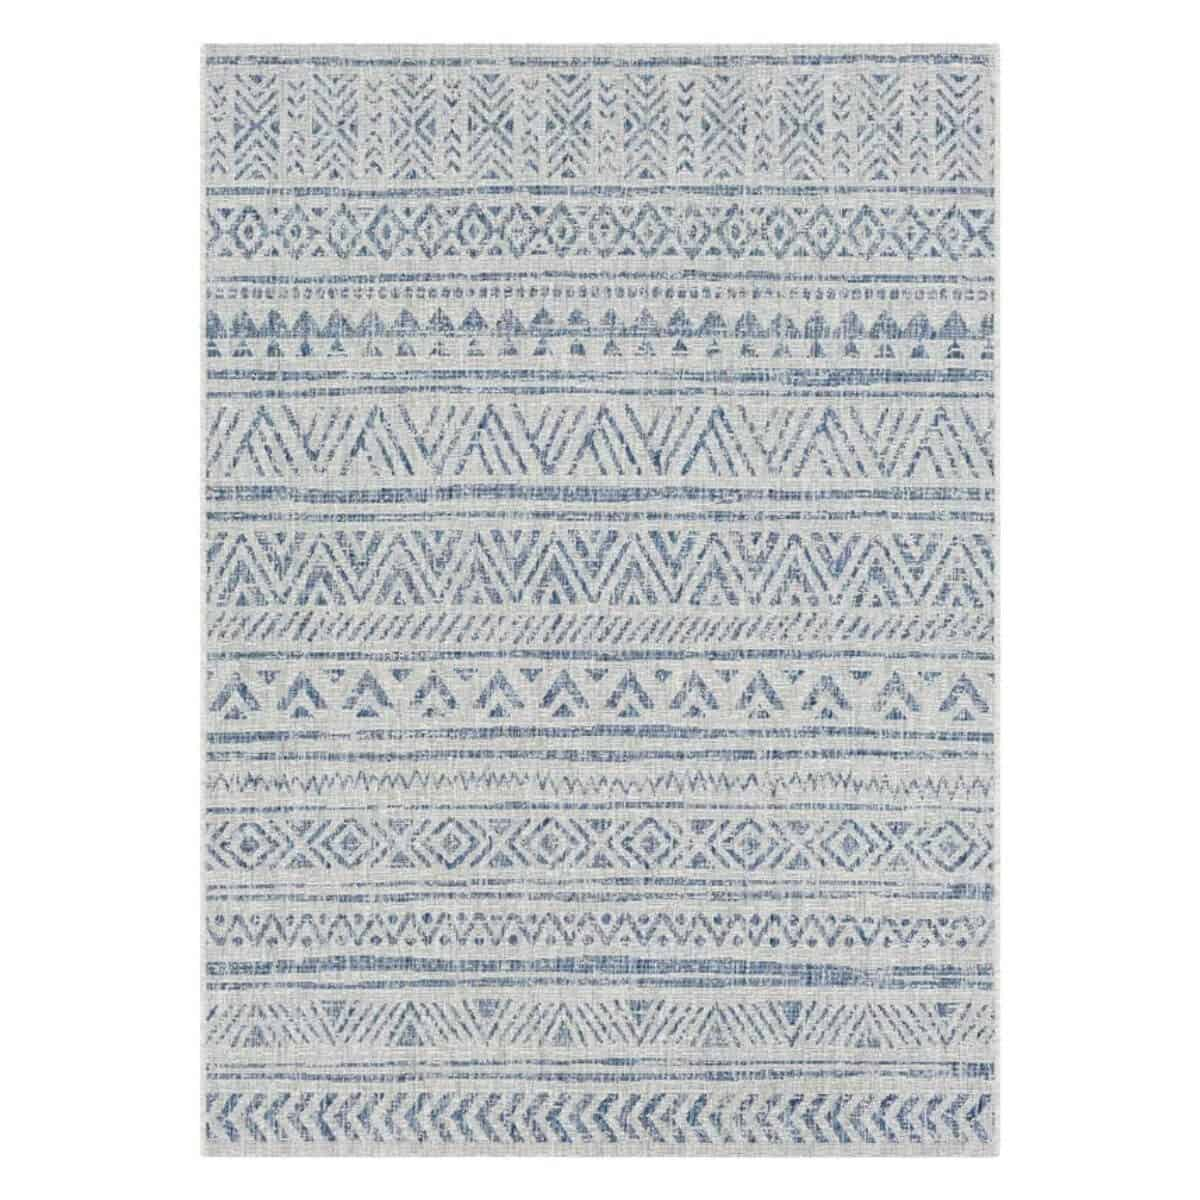 Blue and grey rug with geometric patterns.